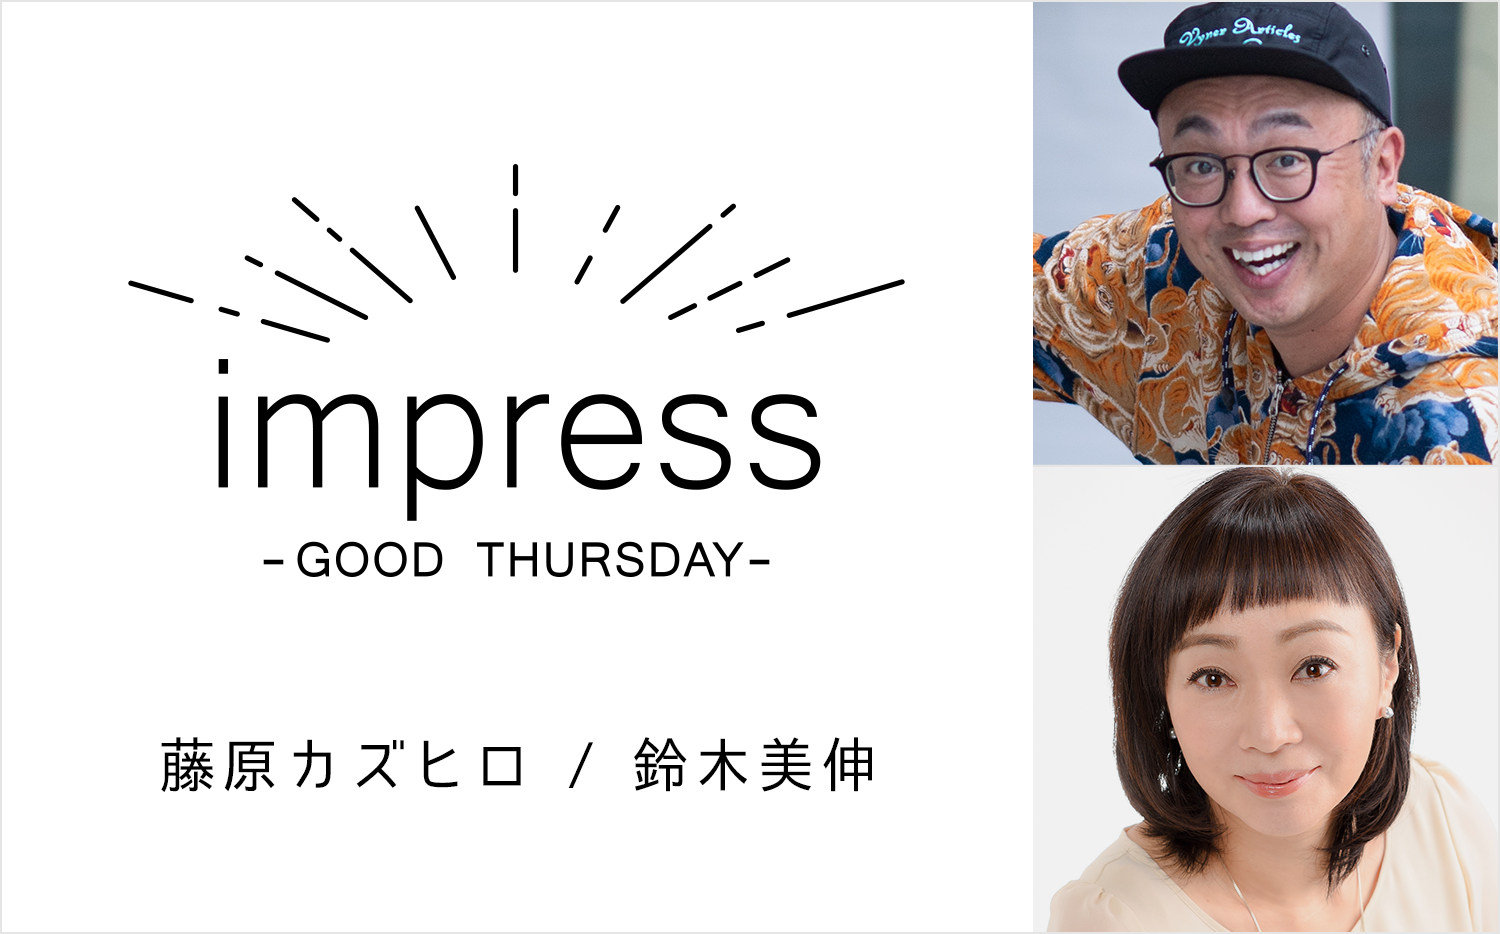 impress -GOOD THURSDAY-